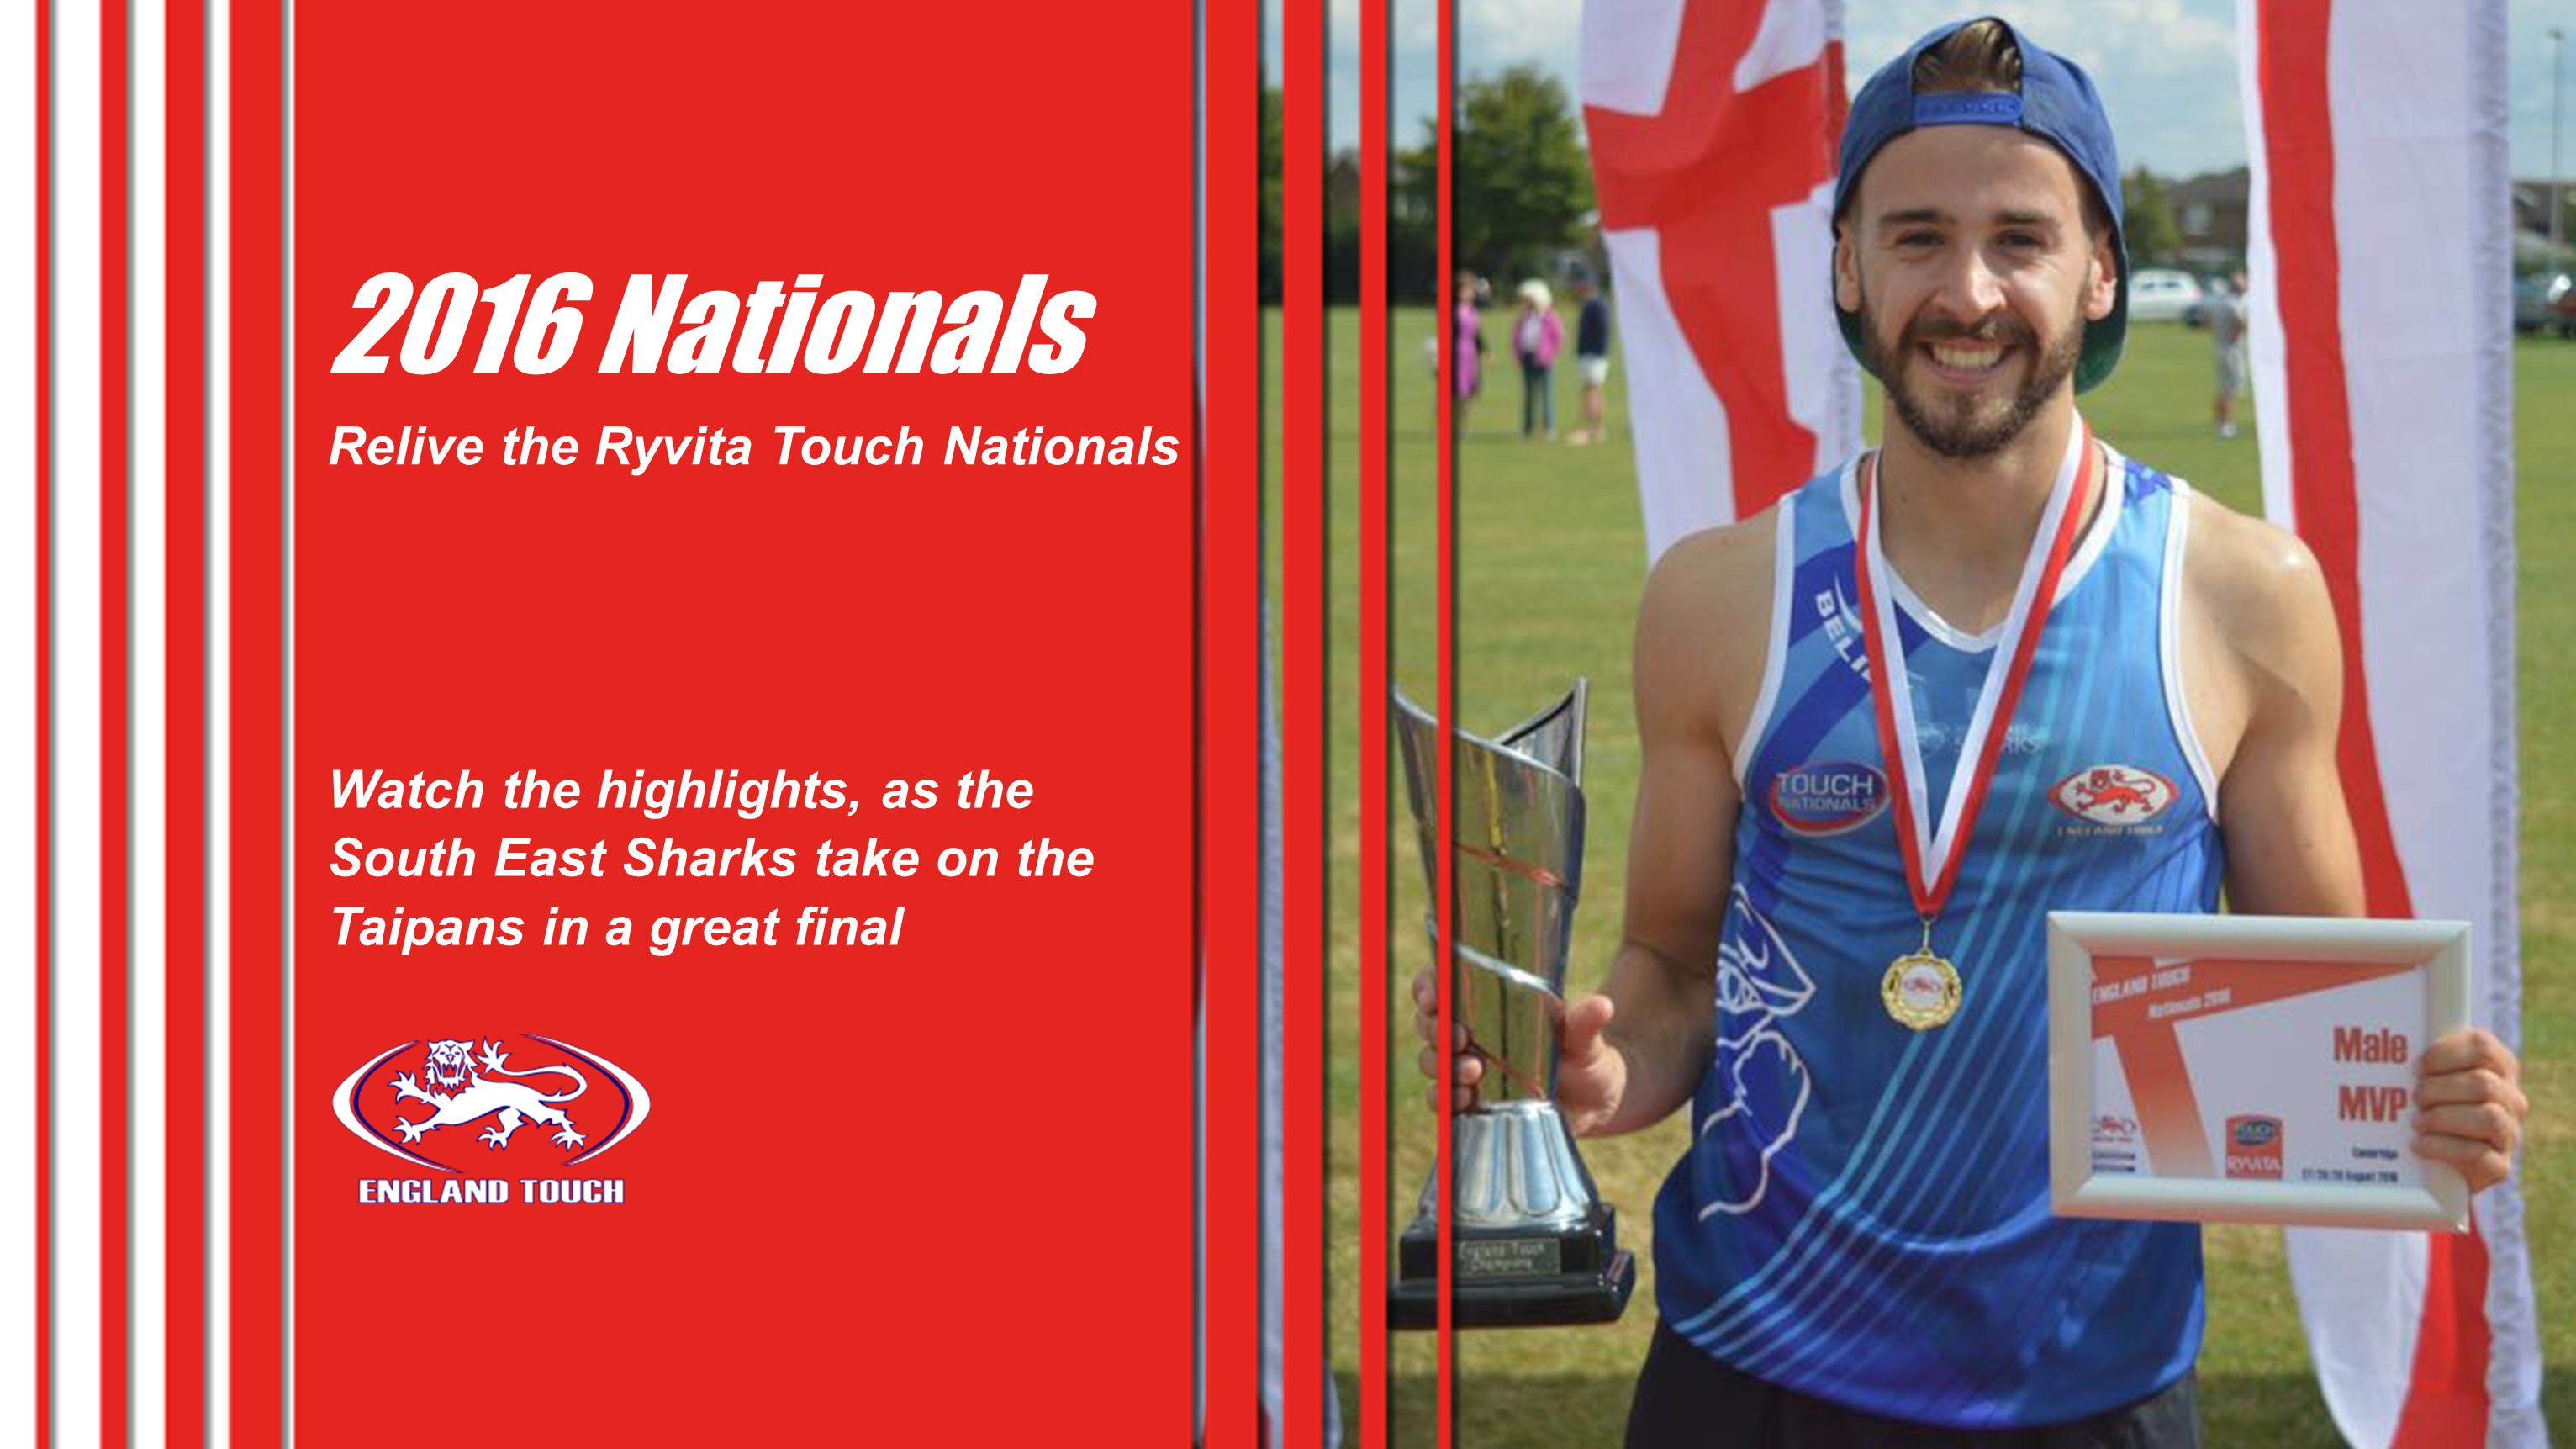 #TouchNationals - Men's Open Final 2016